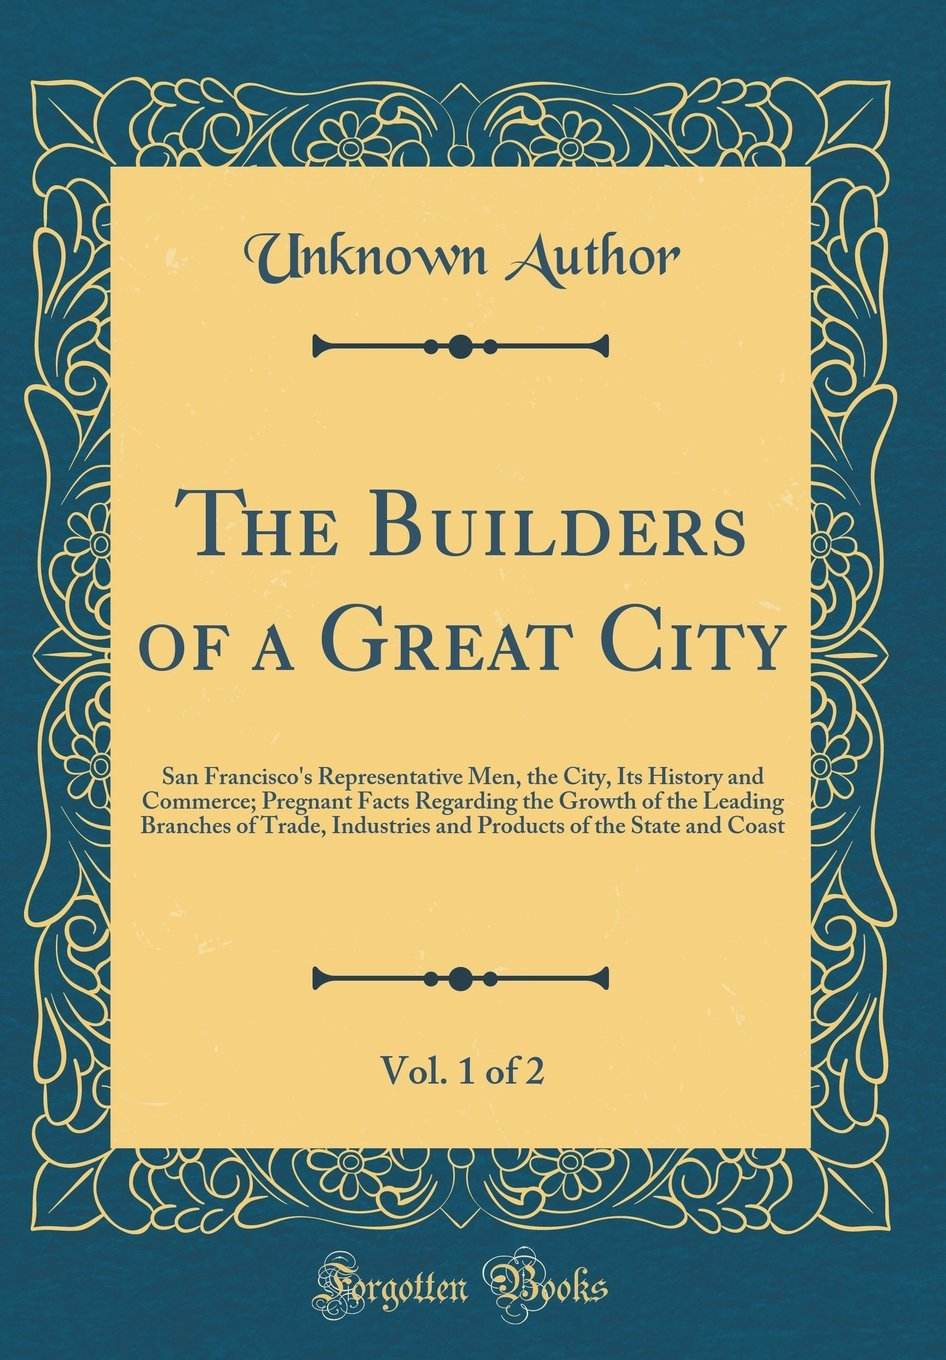 Download The Builders of a Great City, Vol. 1 of 2: San Francisco's Representative Men, the City, Its History and Commerce; Pregnant Facts Regarding the Growth ... of the State and Coast (Classic Reprint) pdf